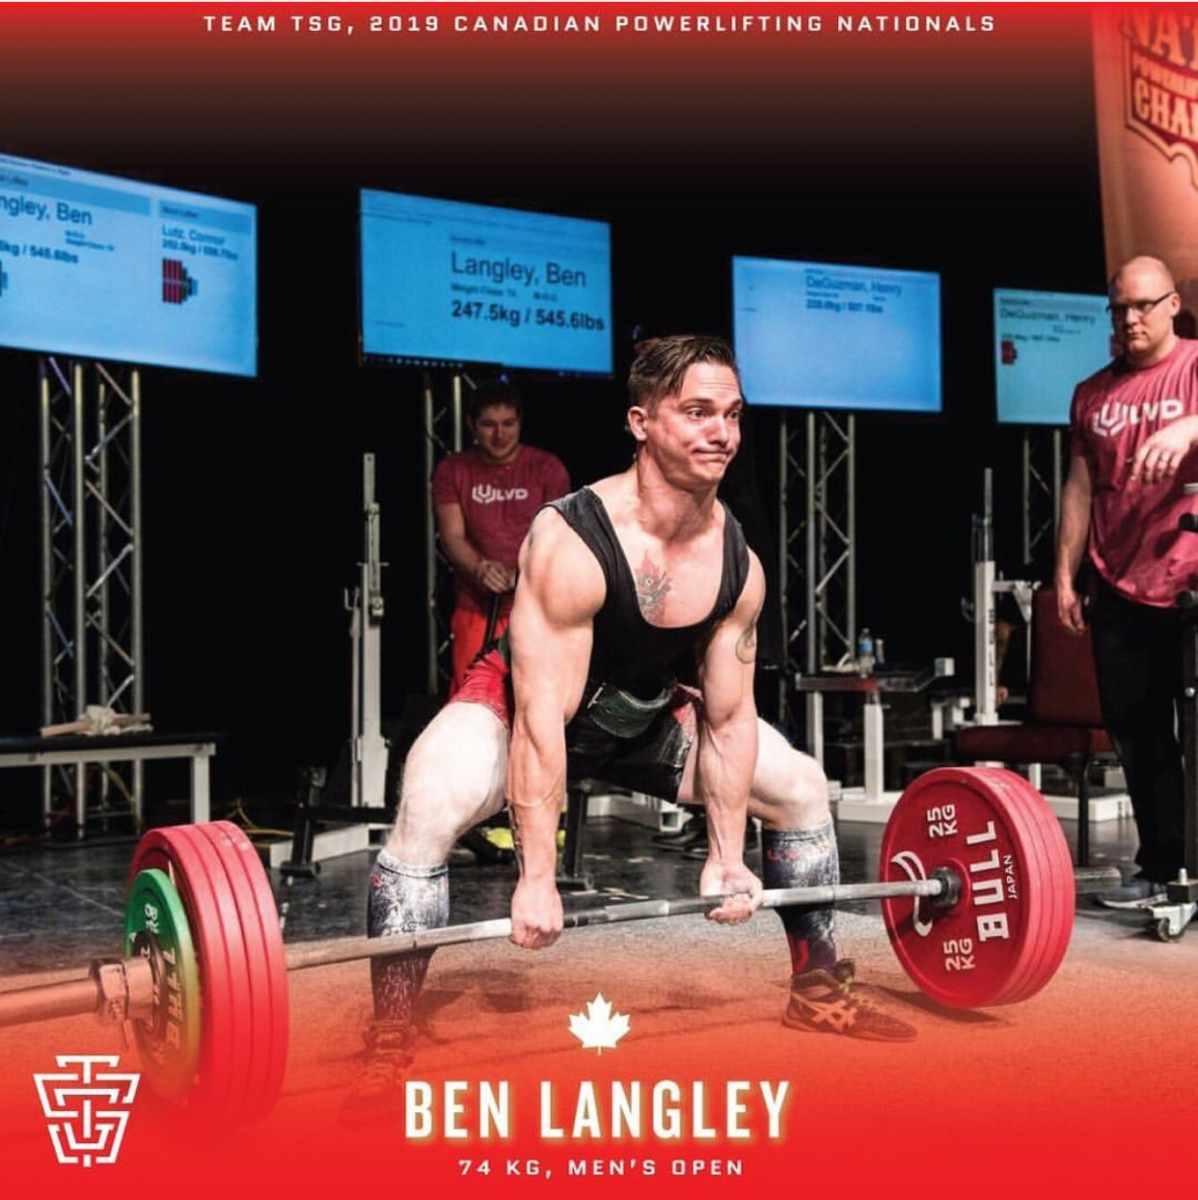 CPU Nationals 2019 Ben Langley